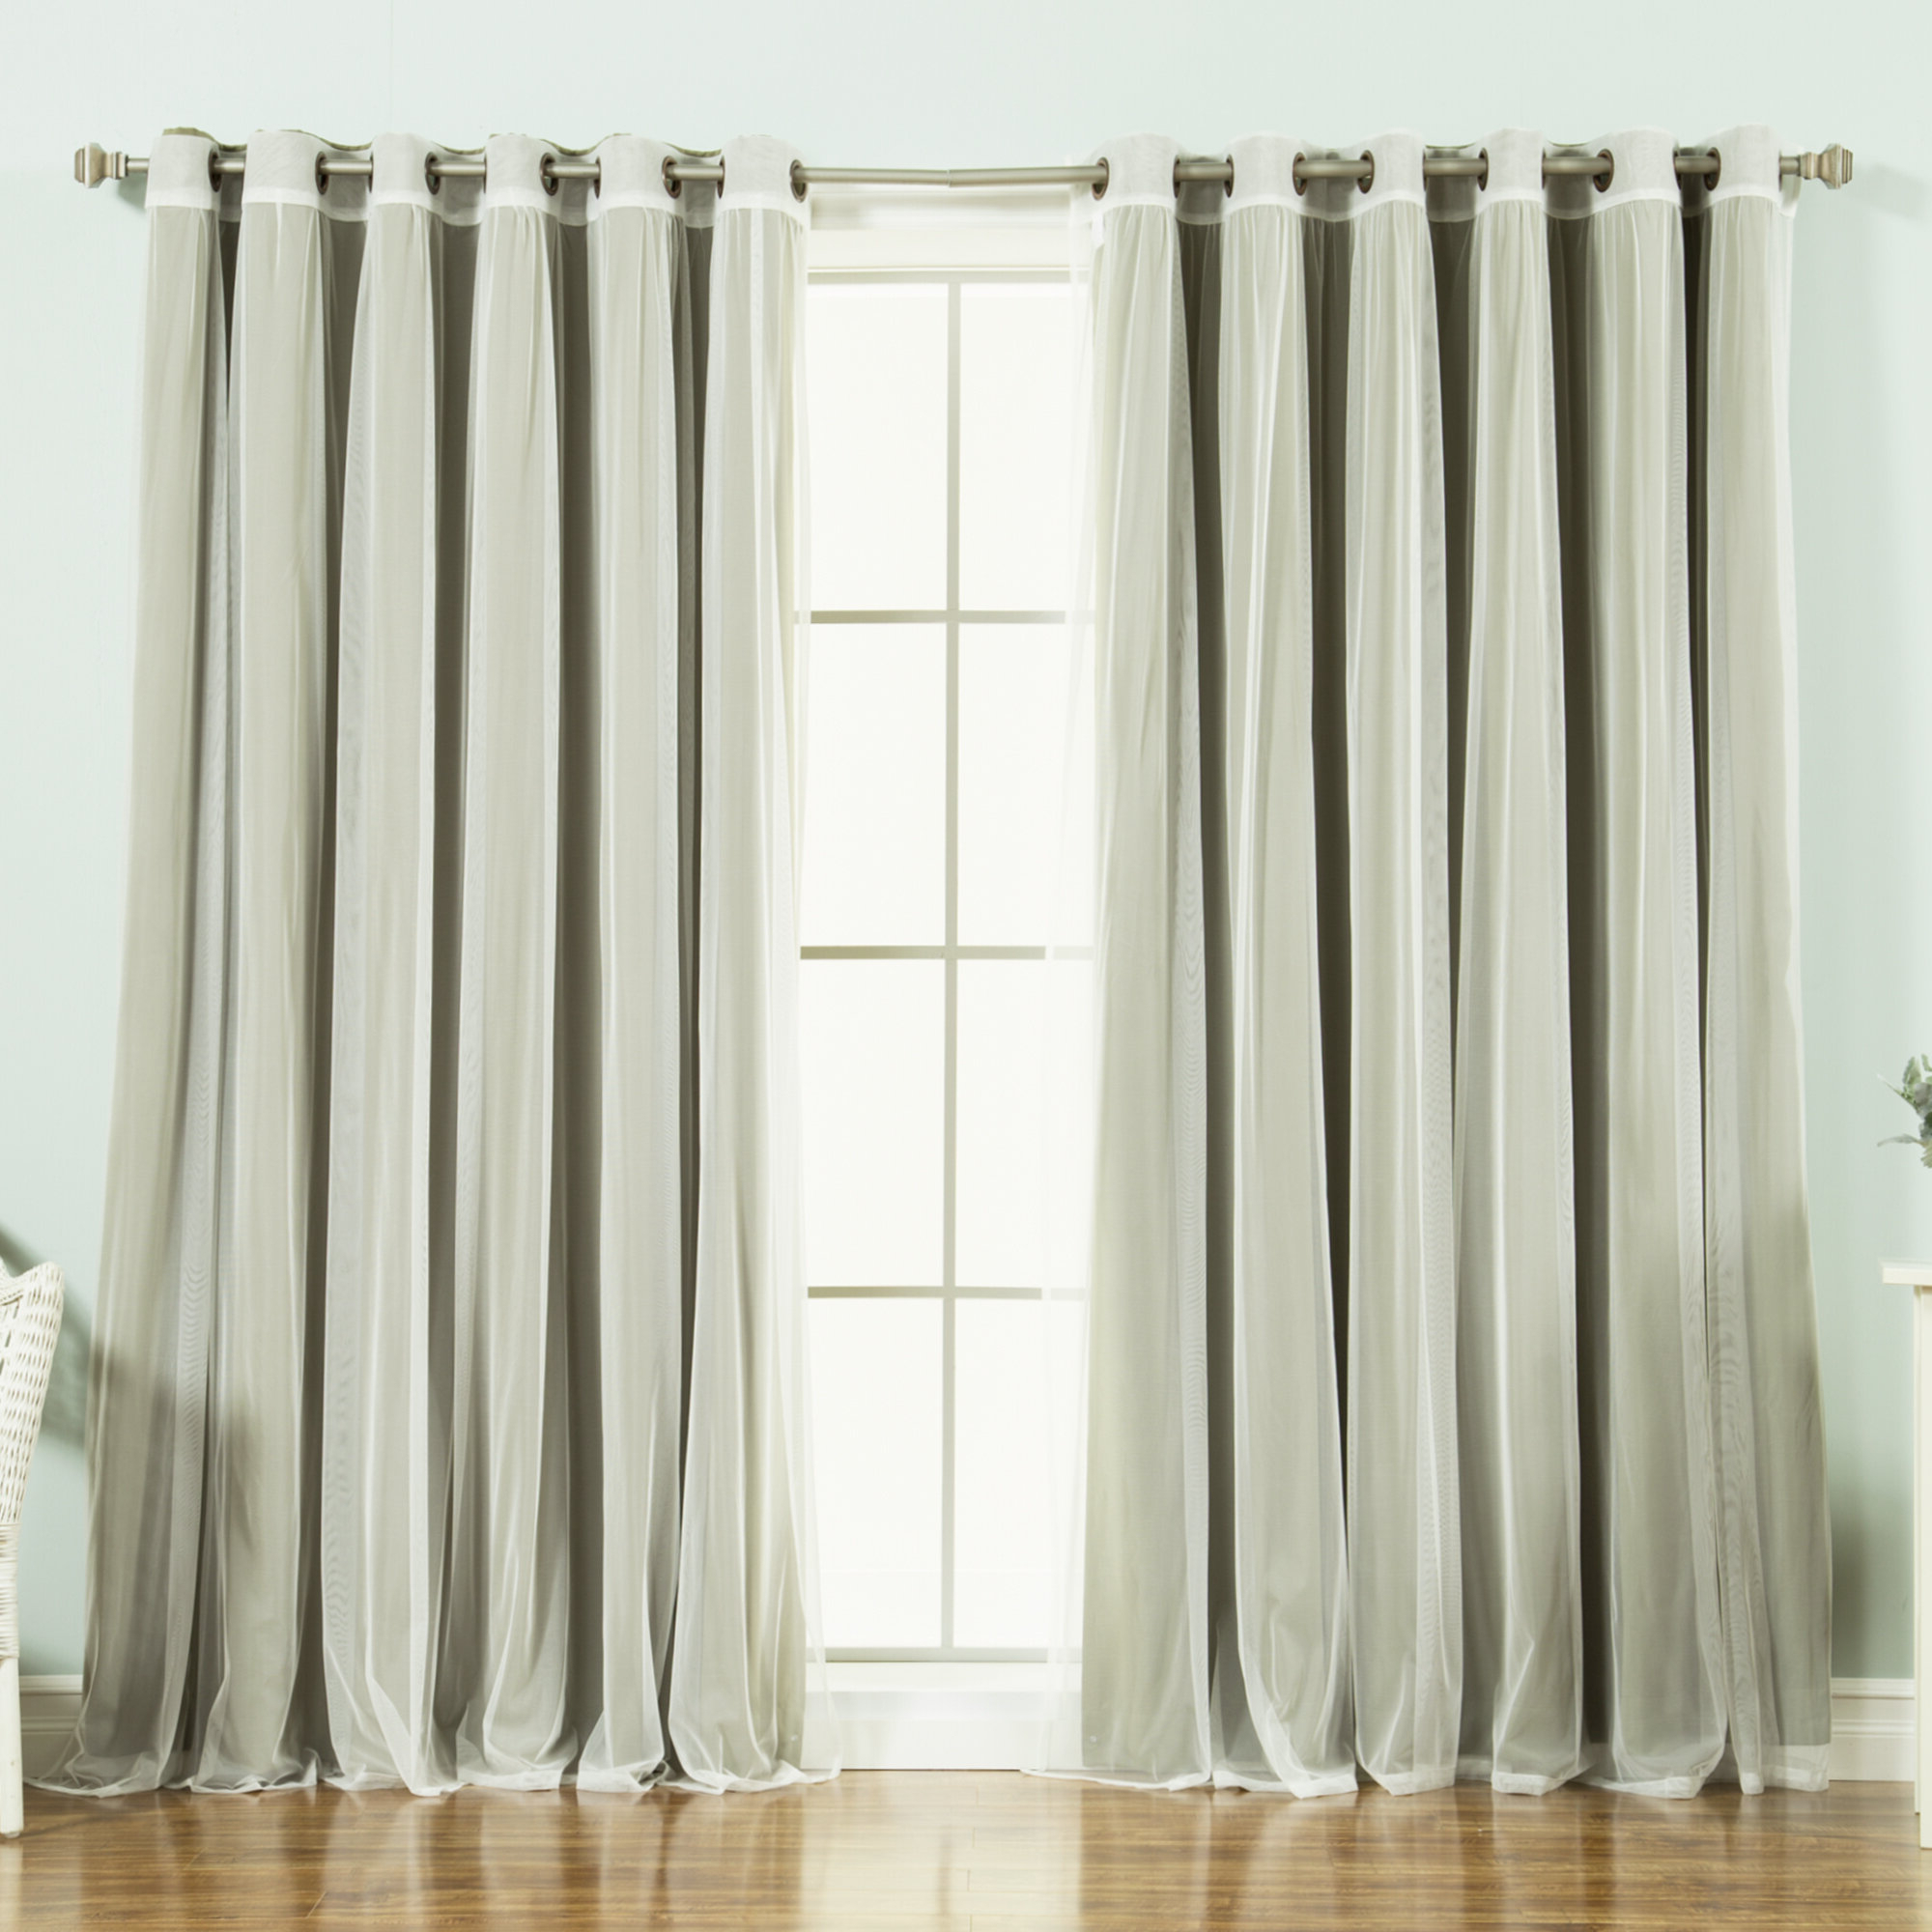 Mix & Match Blackout Tulle Lace Bronze Grommet Curtain Panel Sets Inside Well Known Brunilda Solid Blackout Thermal Grommet Curtain Panels (Gallery 19 of 20)